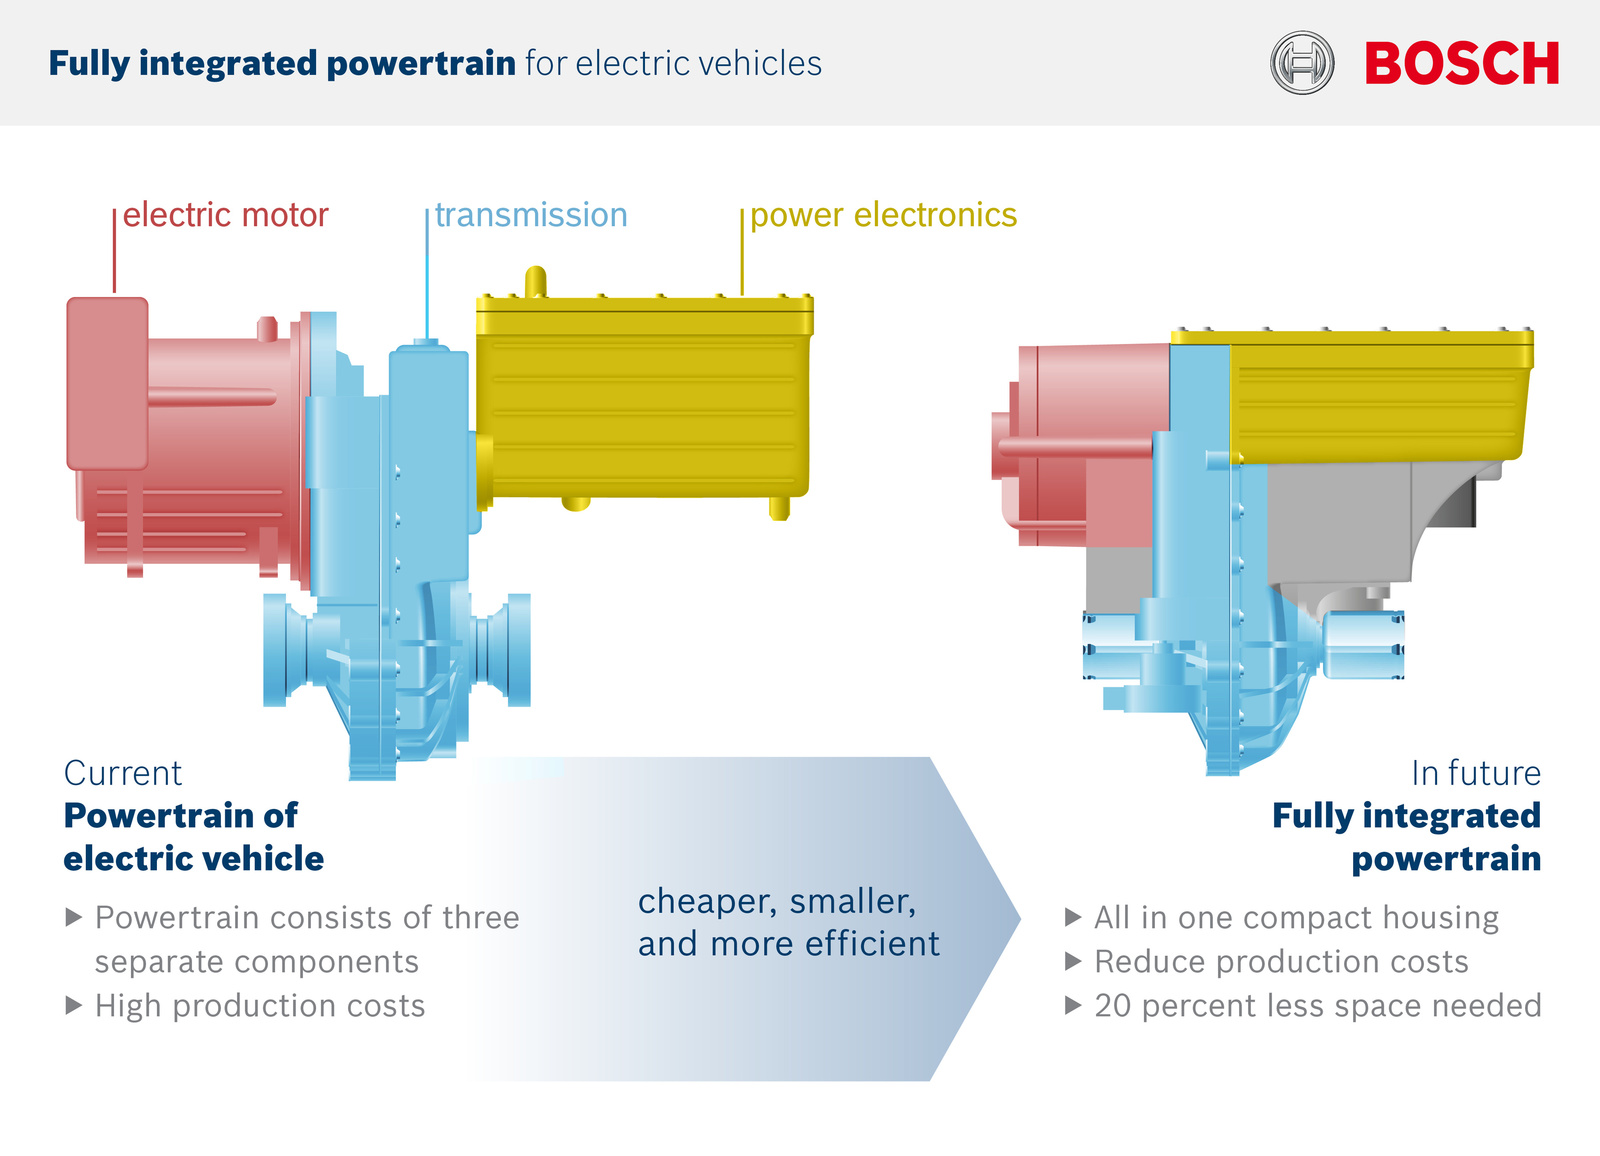 Bosch Is Making Another Push In Electrification With New Compact And Powertrain System Transmission Efficient Electric Drive Unit